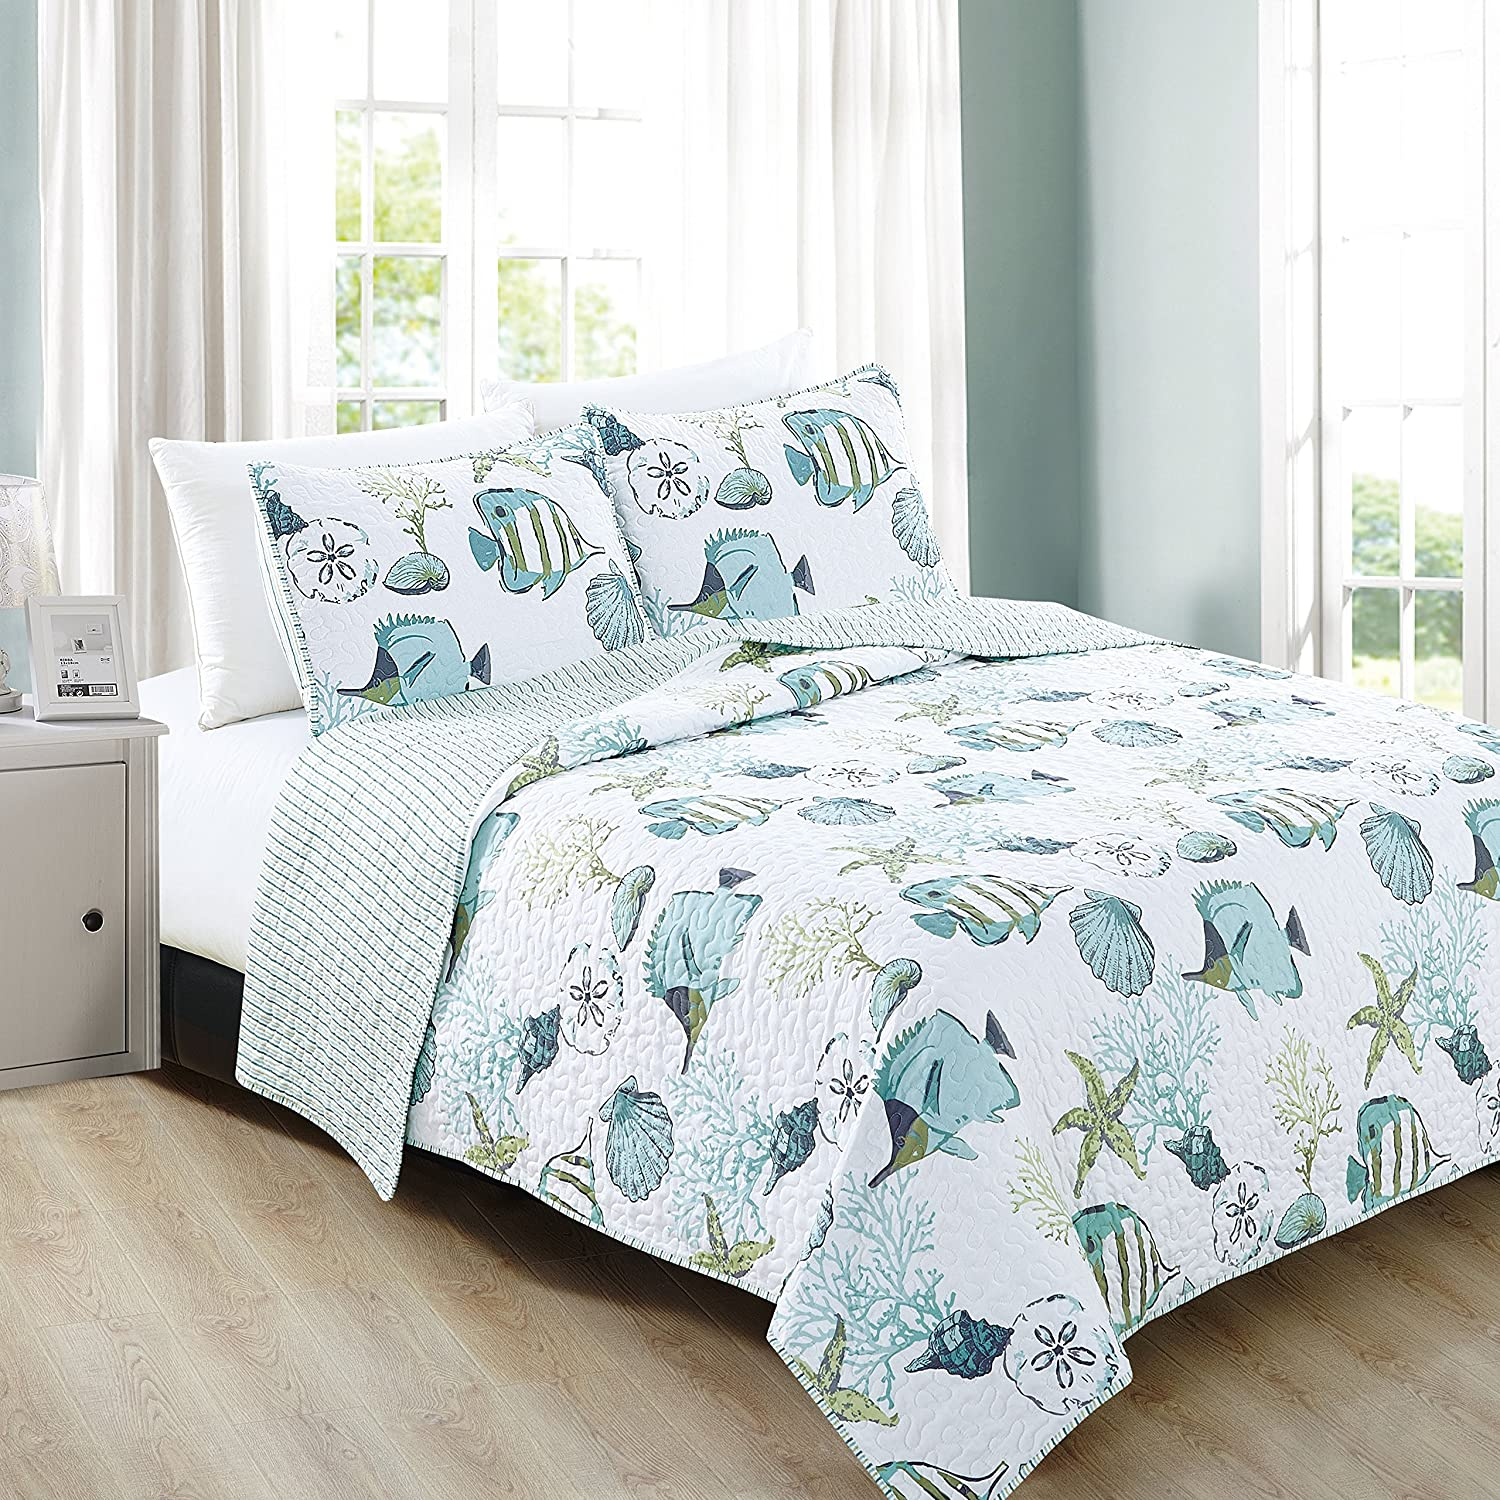 3-Piece Coastal Beach Theme Quilt Set with Shams. Soft All-Season Luxury Microfiber Reversible Bedspread and Coverlet. Seaside Collection by Home Fashion Designs Brand. (King, Multi)